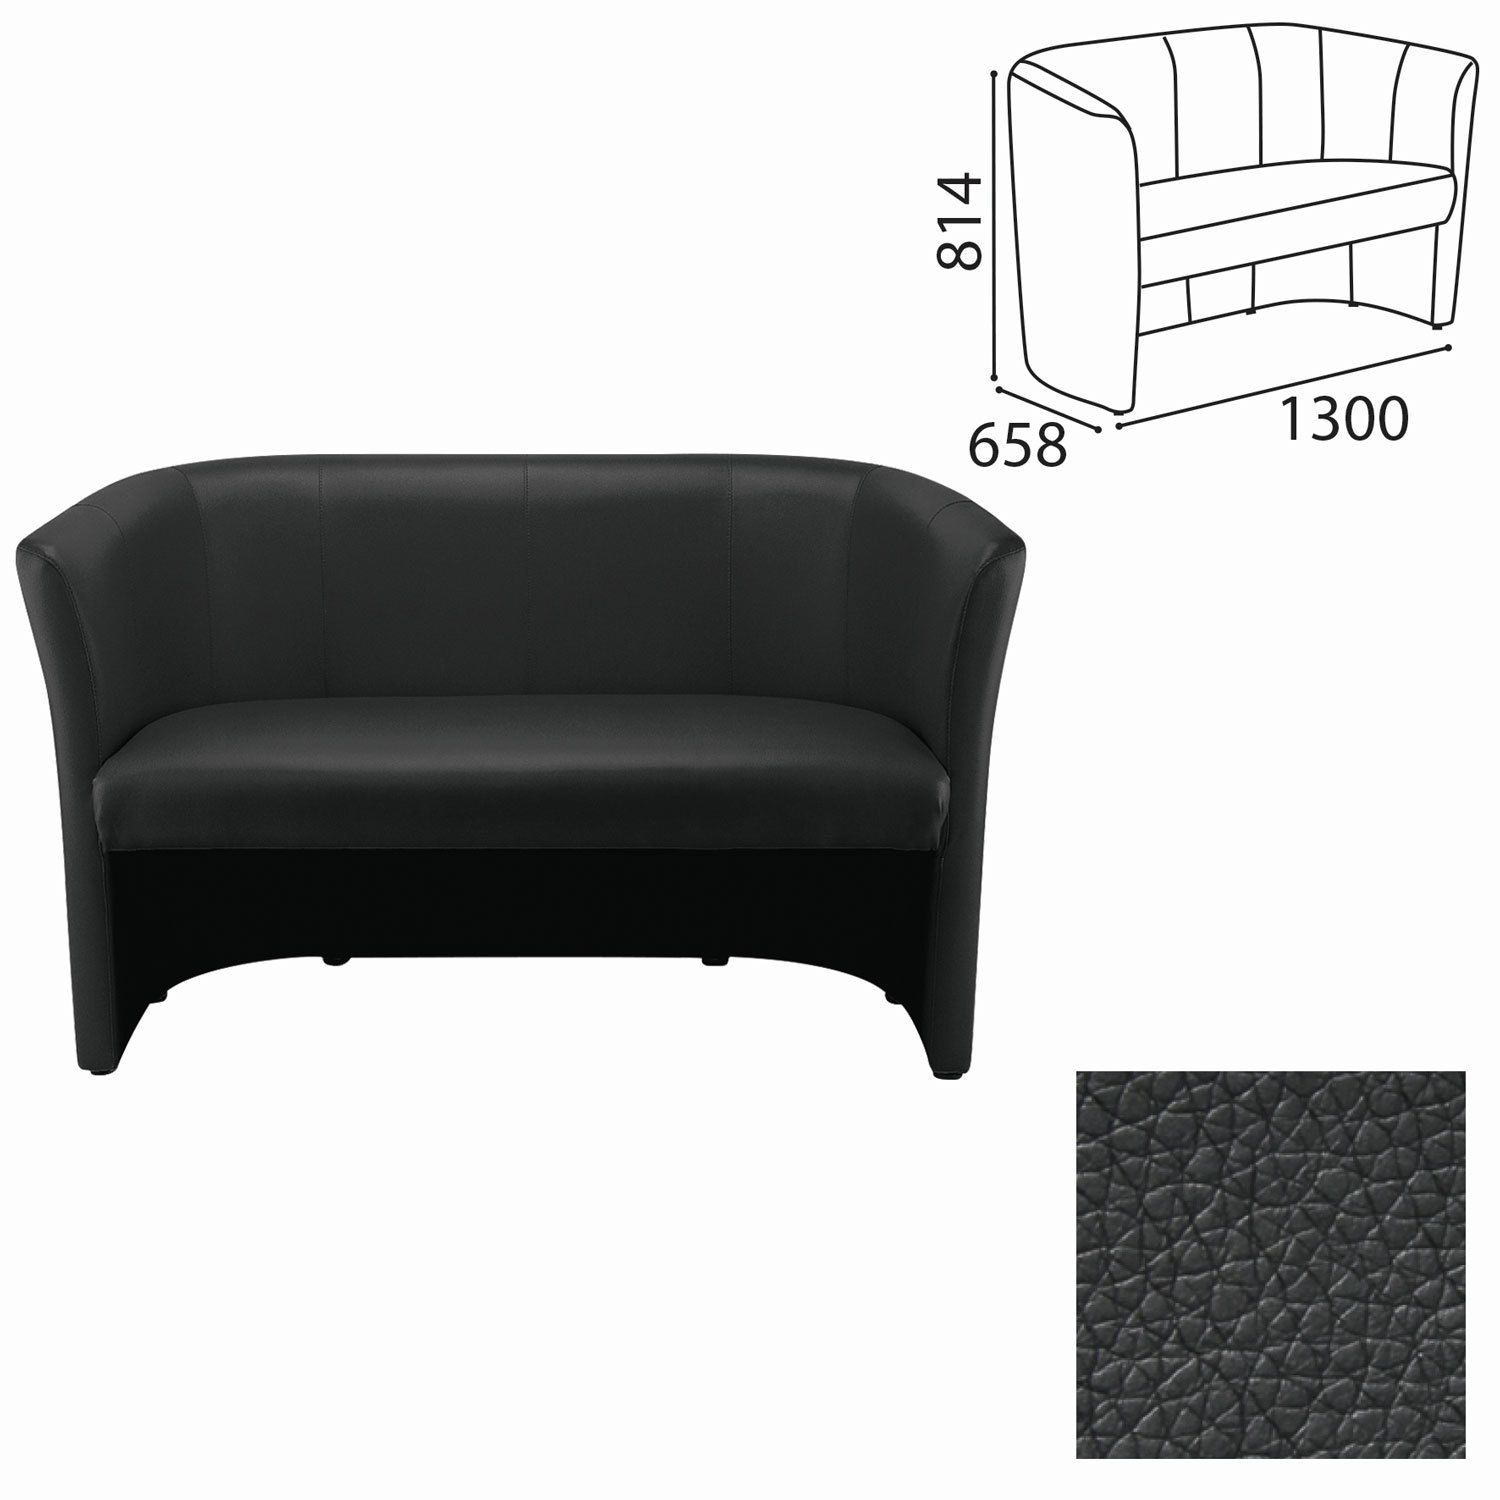 """NOWY STYL / Double sofa """"Club Duo"""", 814х1300х658 mm, with armrests, leatherette, black"""